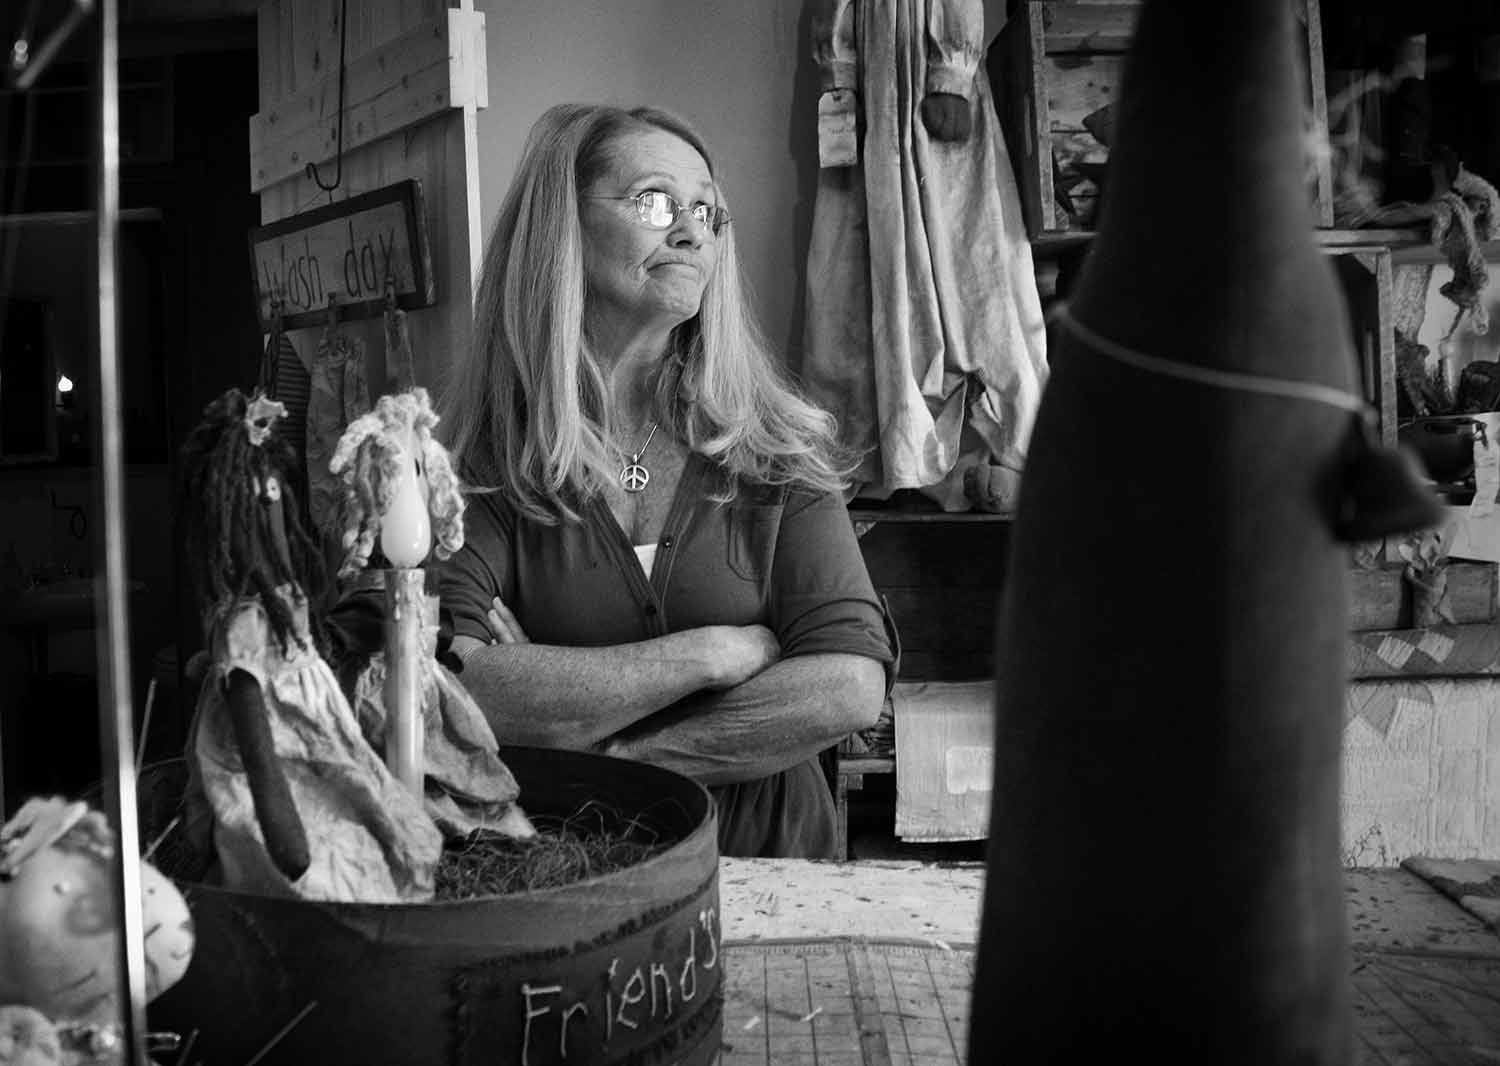 Self-taught artist Ann Smiddy plans on selling a vast range of affordable pieces from her home studio within the year. photo by Hope Cronin - 2011